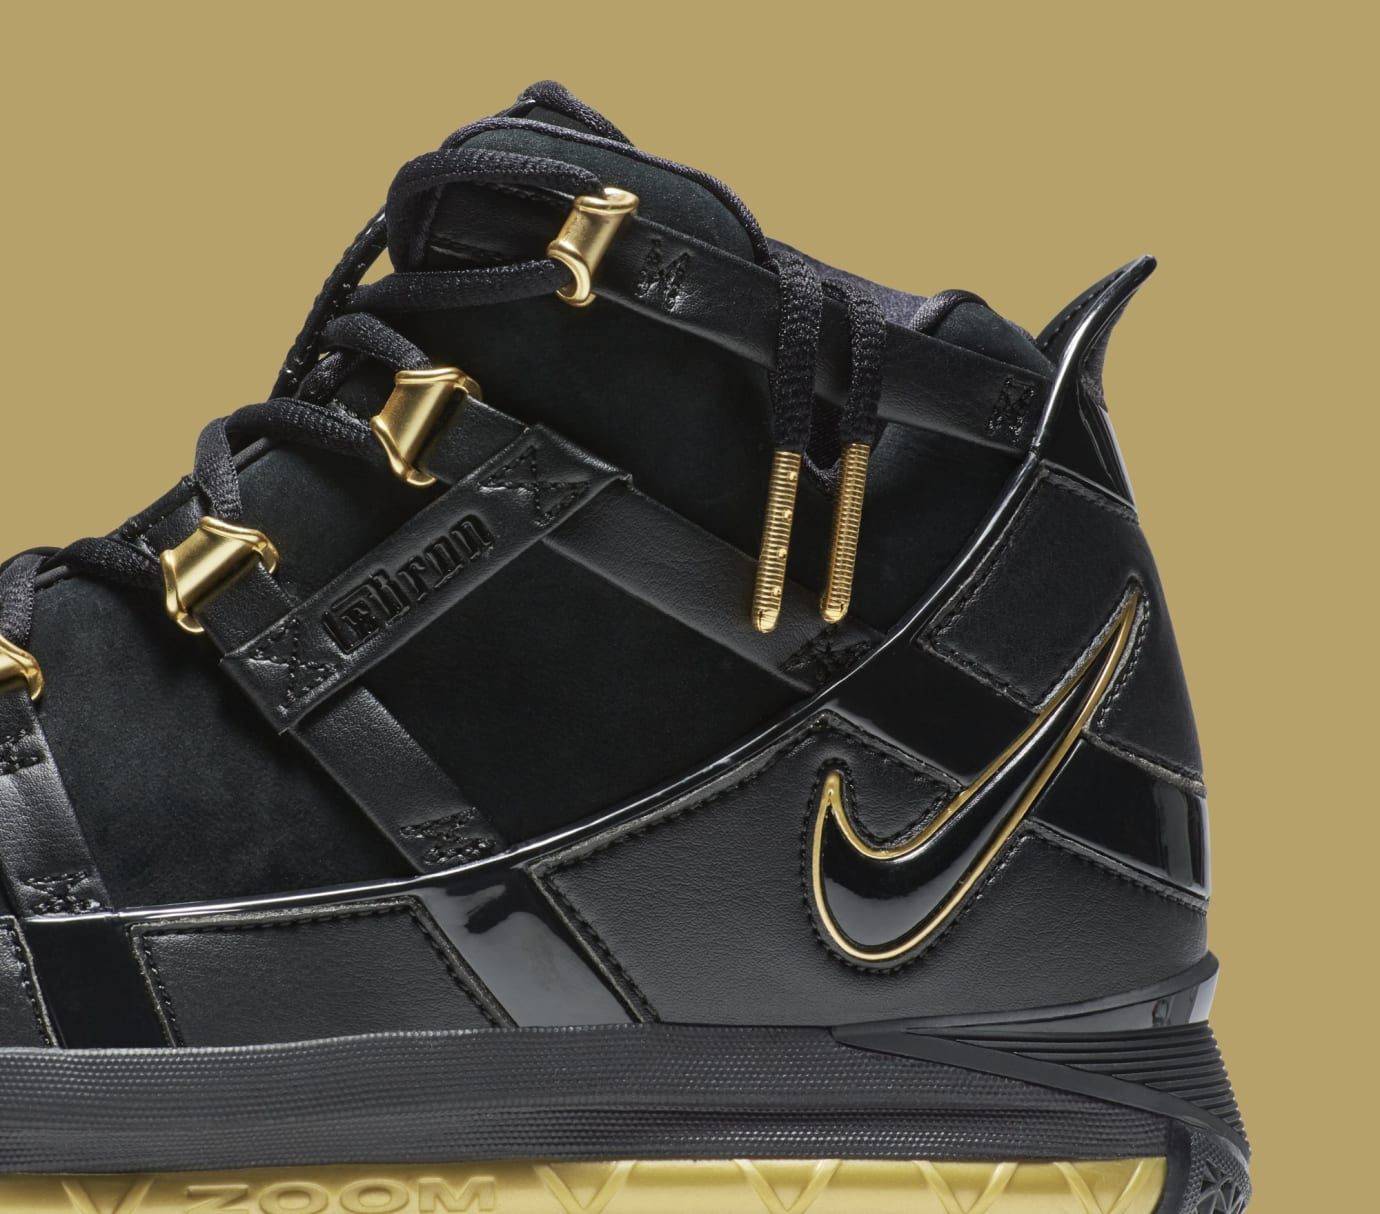 Nike LeBron 3 'Black/Gold' Retro AO2434-001 (Detail)